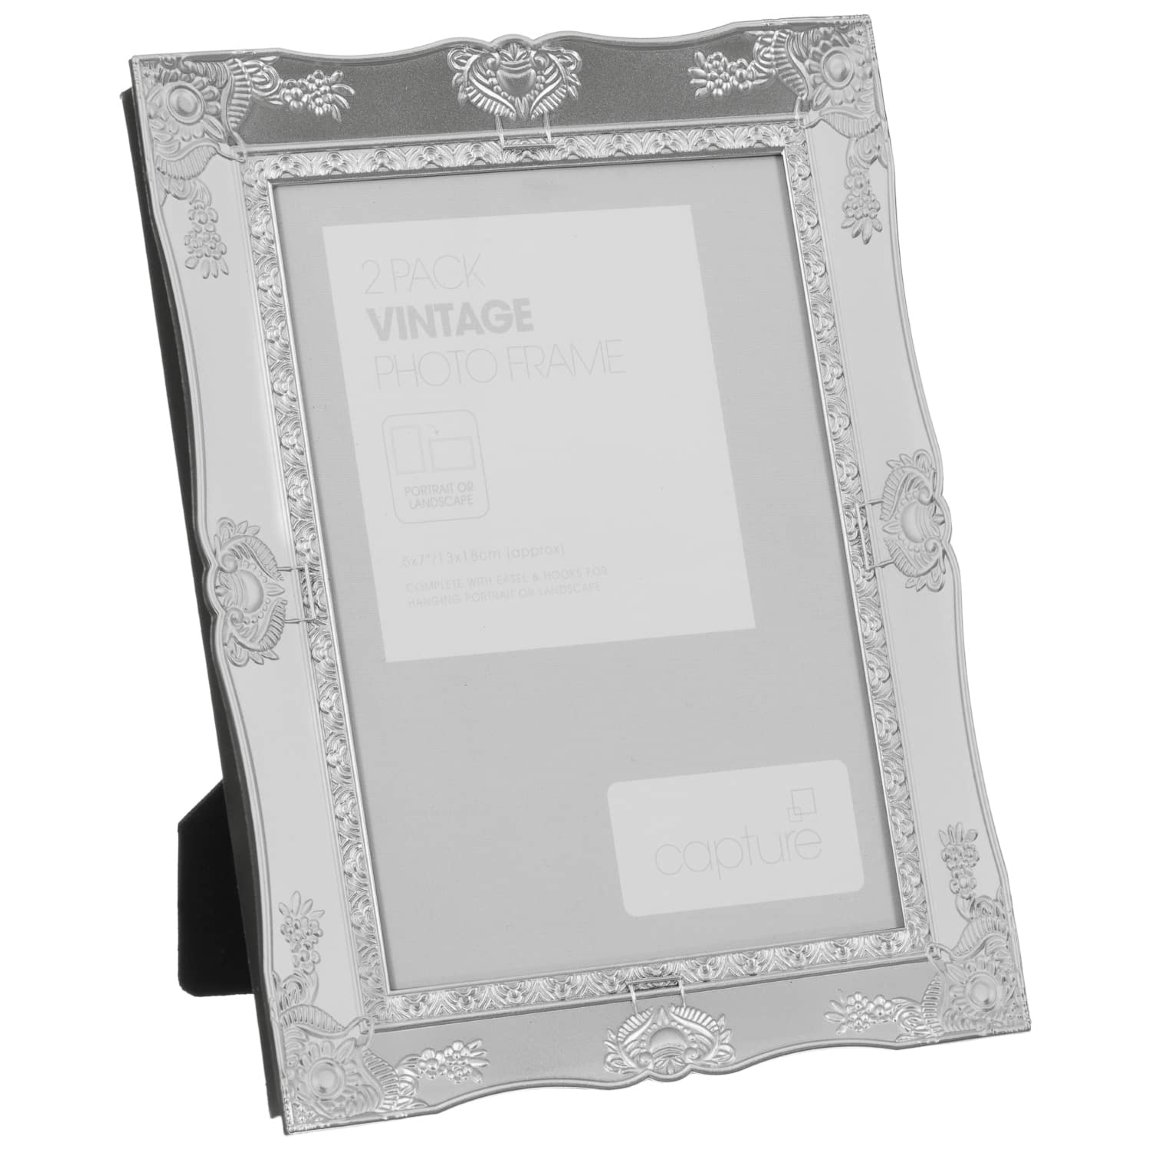 Metallic Vintage Photo Frames 5 x 7